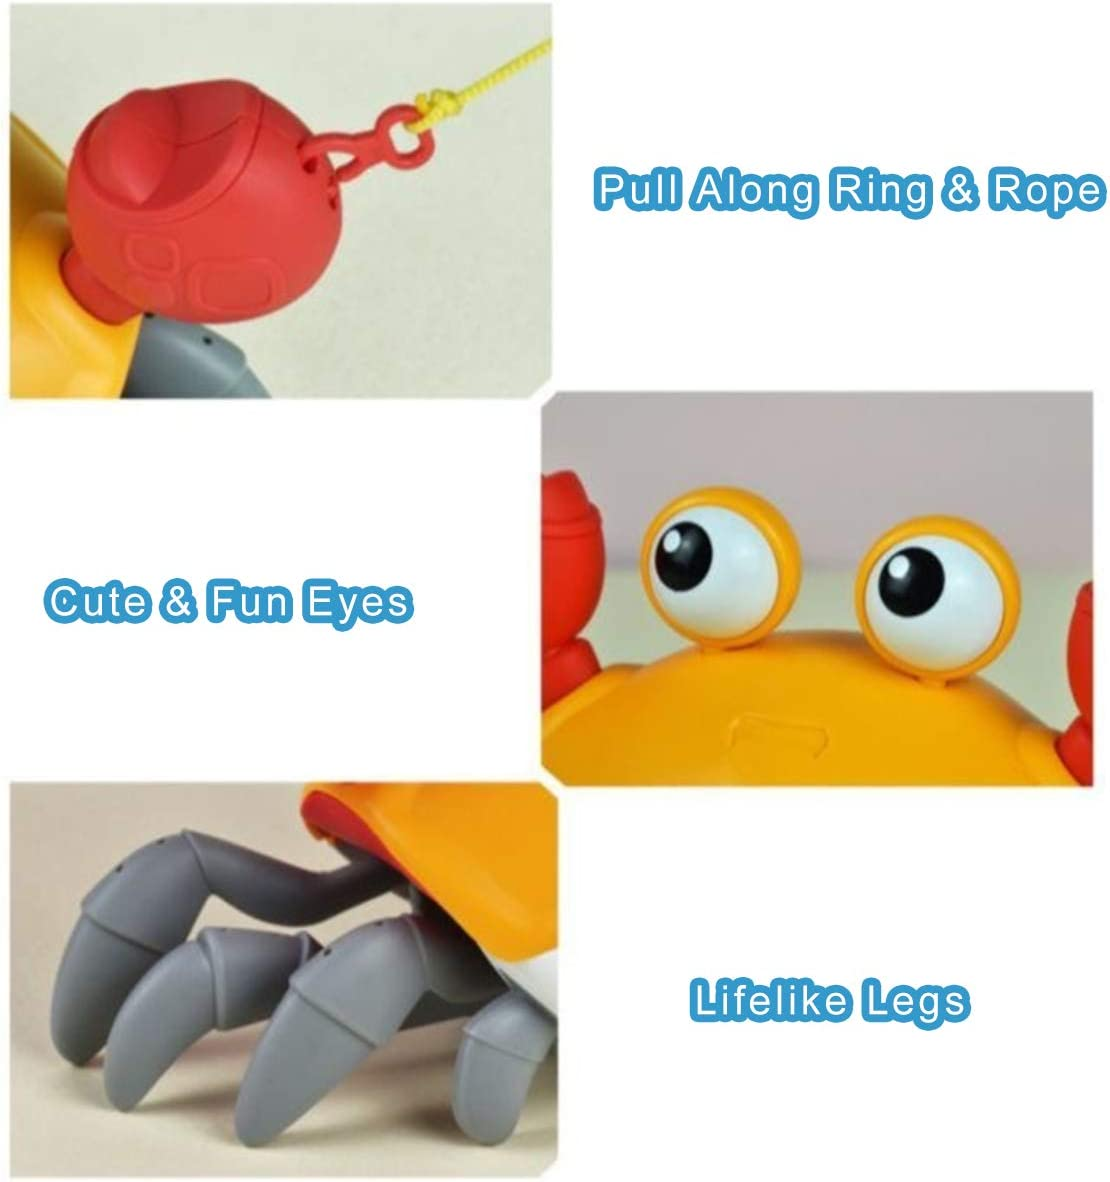 Wind Up Baby Bathtub Toy and Pull Along Walking Toy for Kids 2 in 1 Mechanical Clockwork Crab for Boys Girls Blue BAKAM Bath Toys for Toddlers 1-3 Years